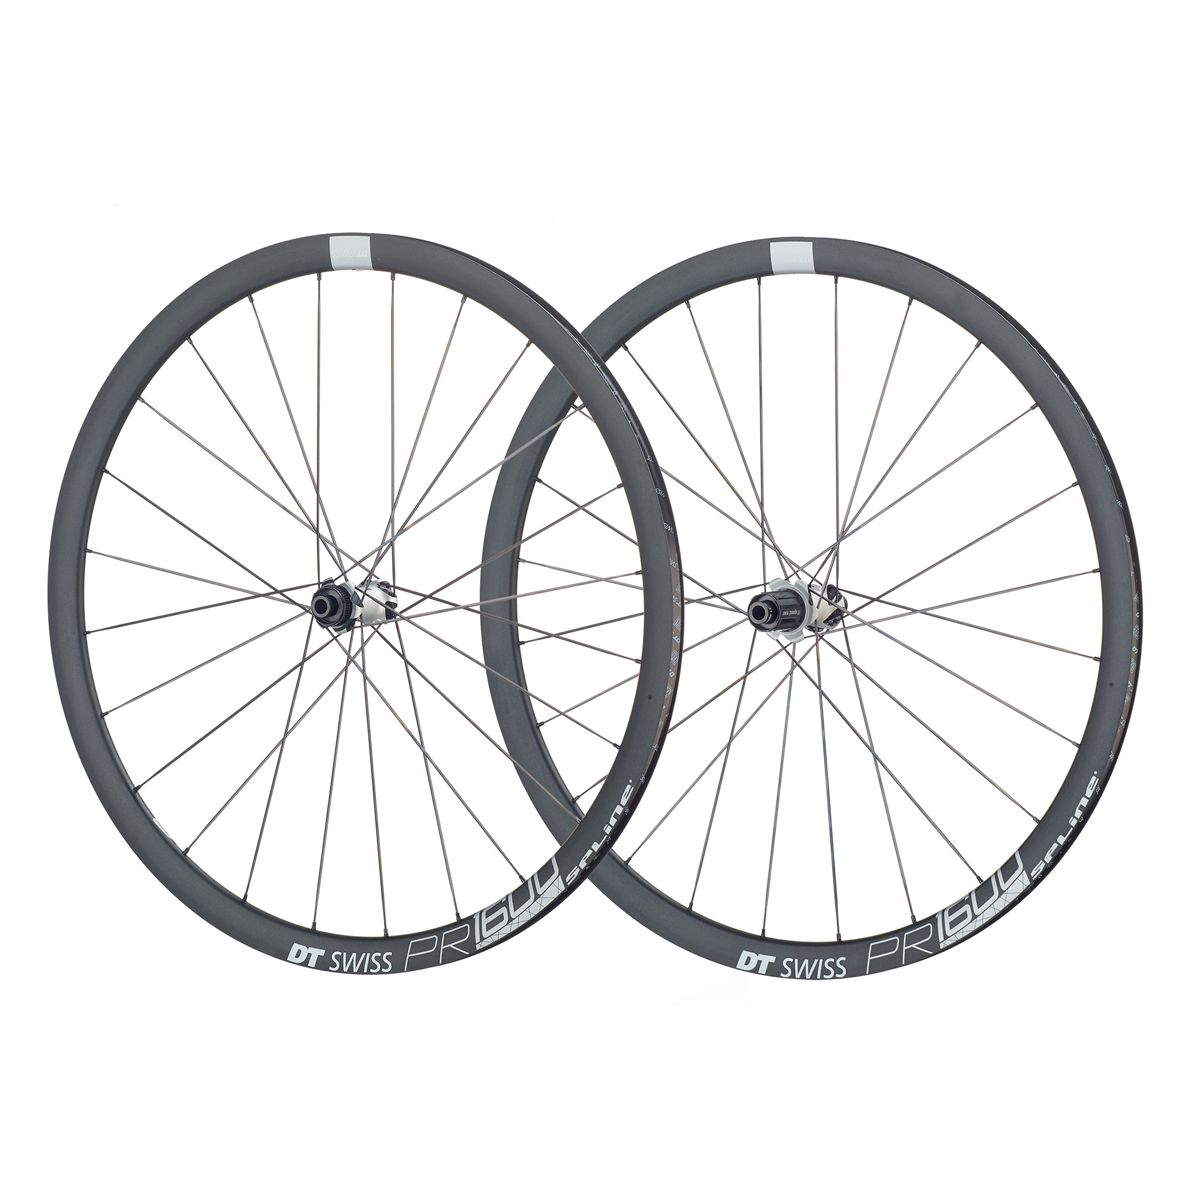 Buy DT Swiss PR 1600 Spline 32 db road wheels 28